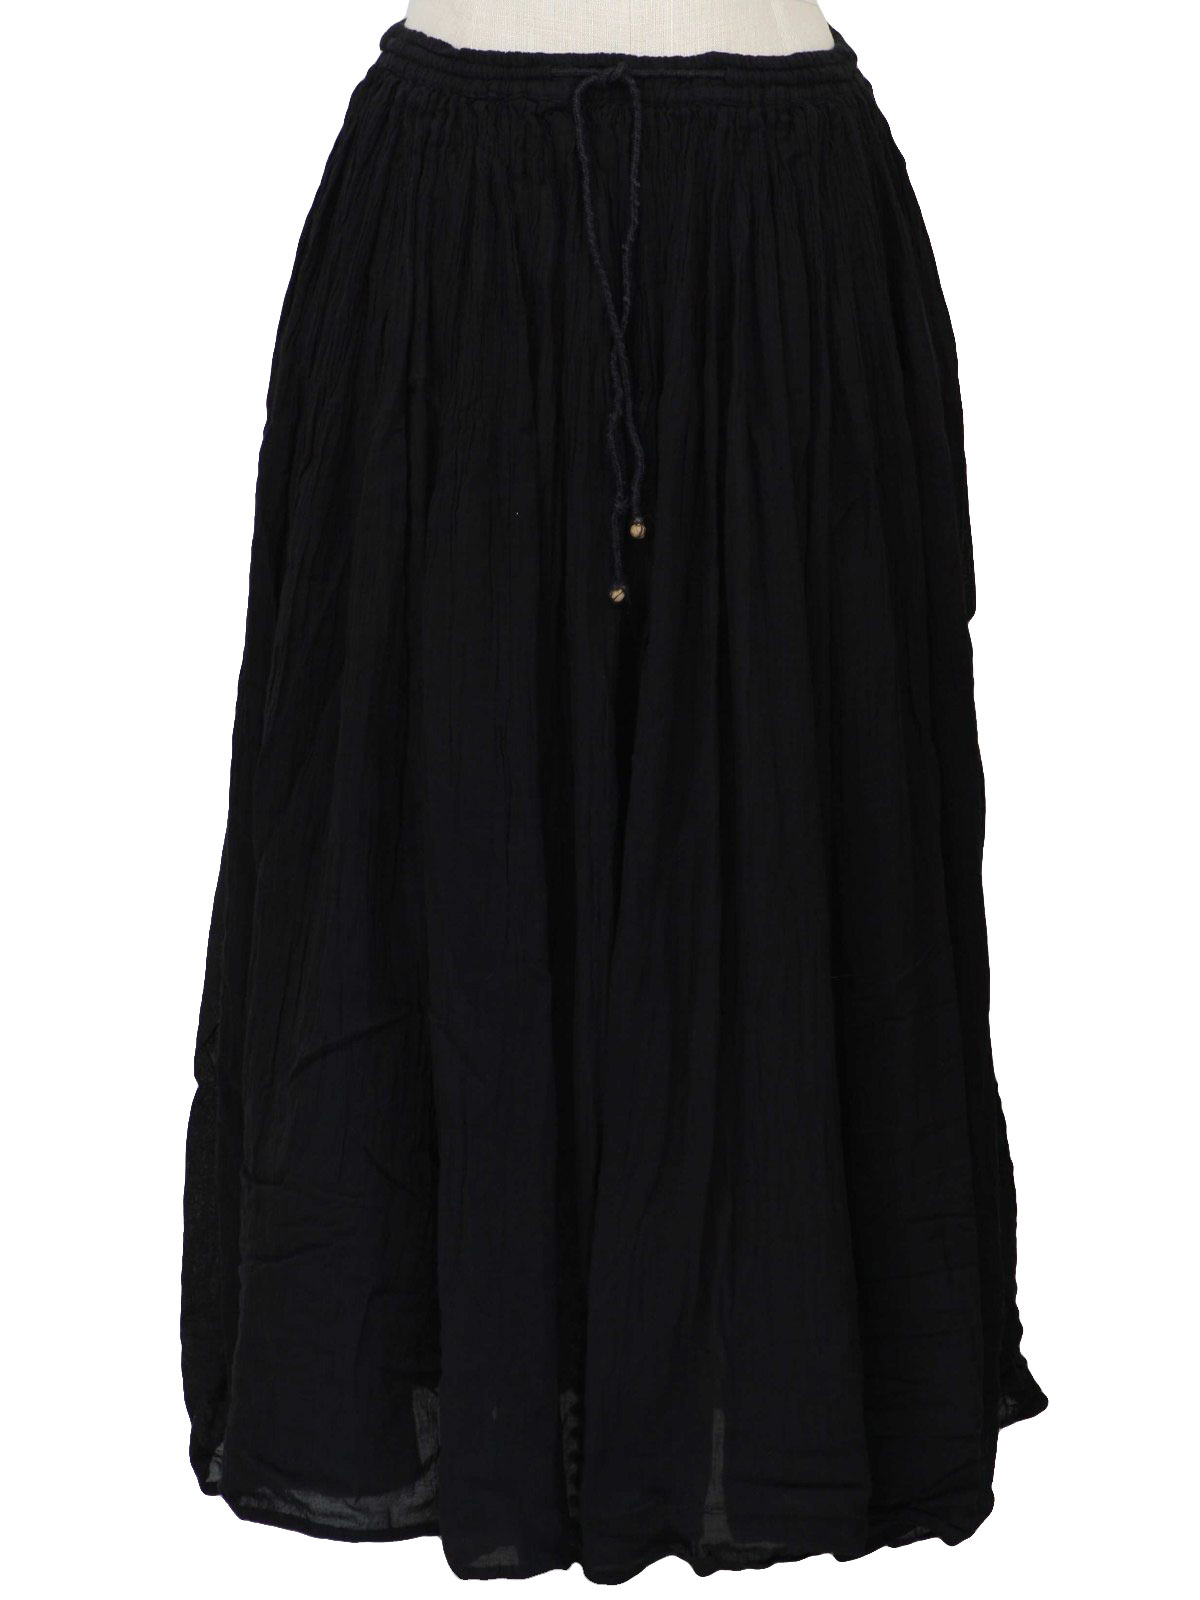 Black Broomstick Skirt 63